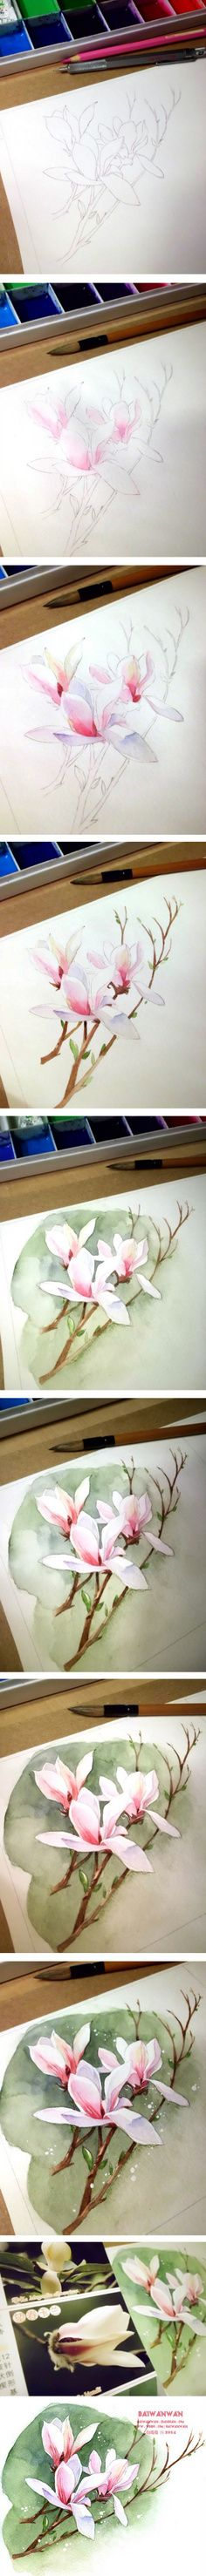 Beautiful step by step photos to complete this lovely watercolor flower.   夜__静寂的港湾采集到插画